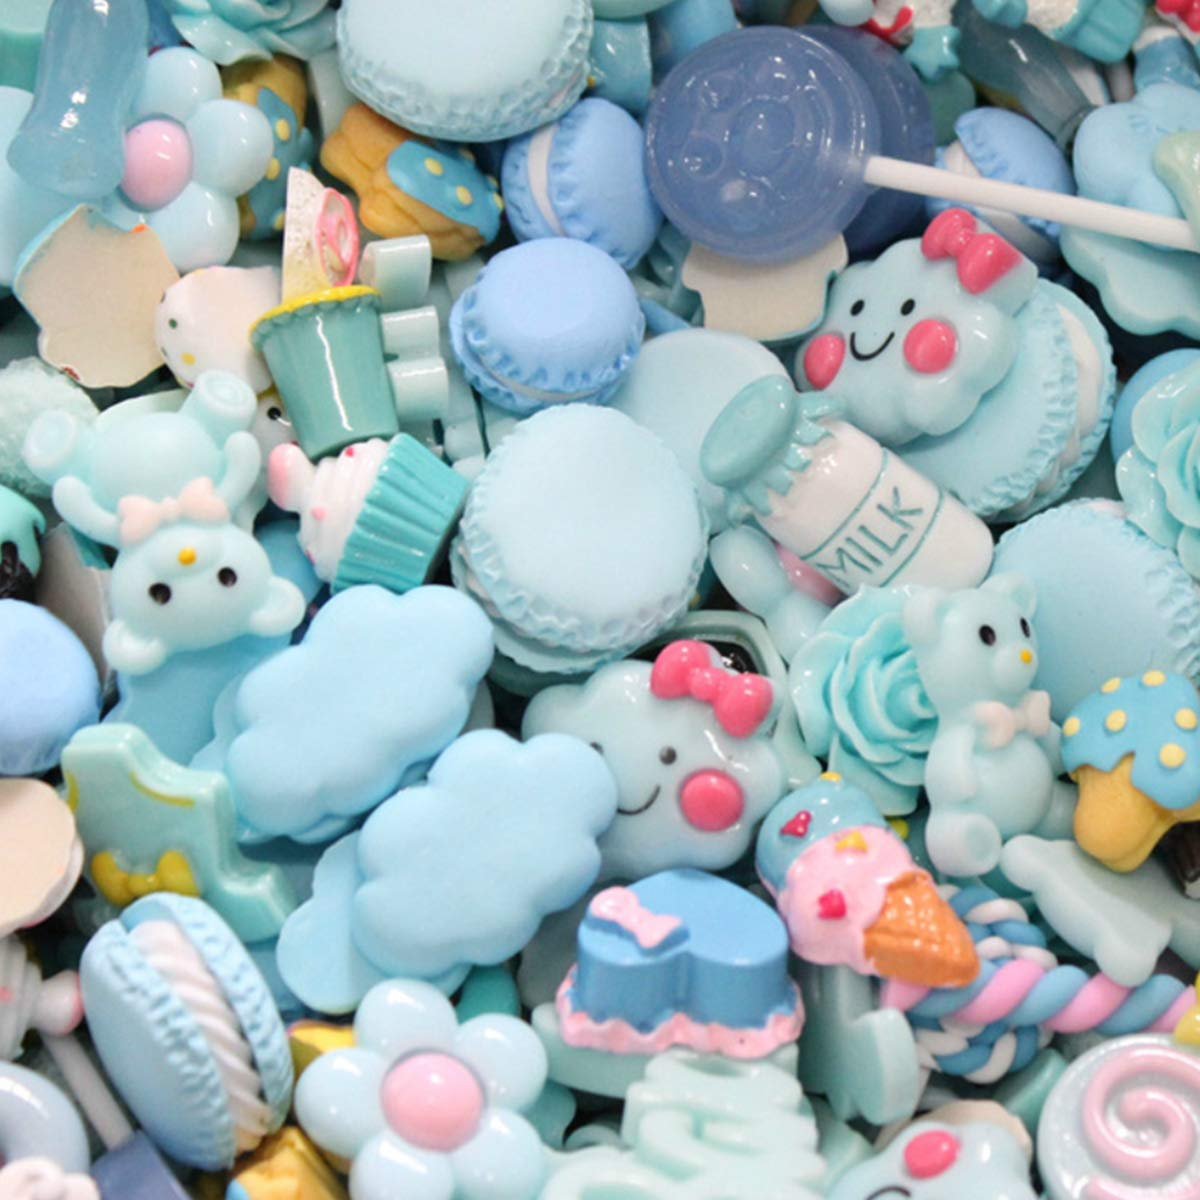 50pcs Lot Cute Infant Shape Mixed Color Buttons Card Apparel Scrapbooking Craft